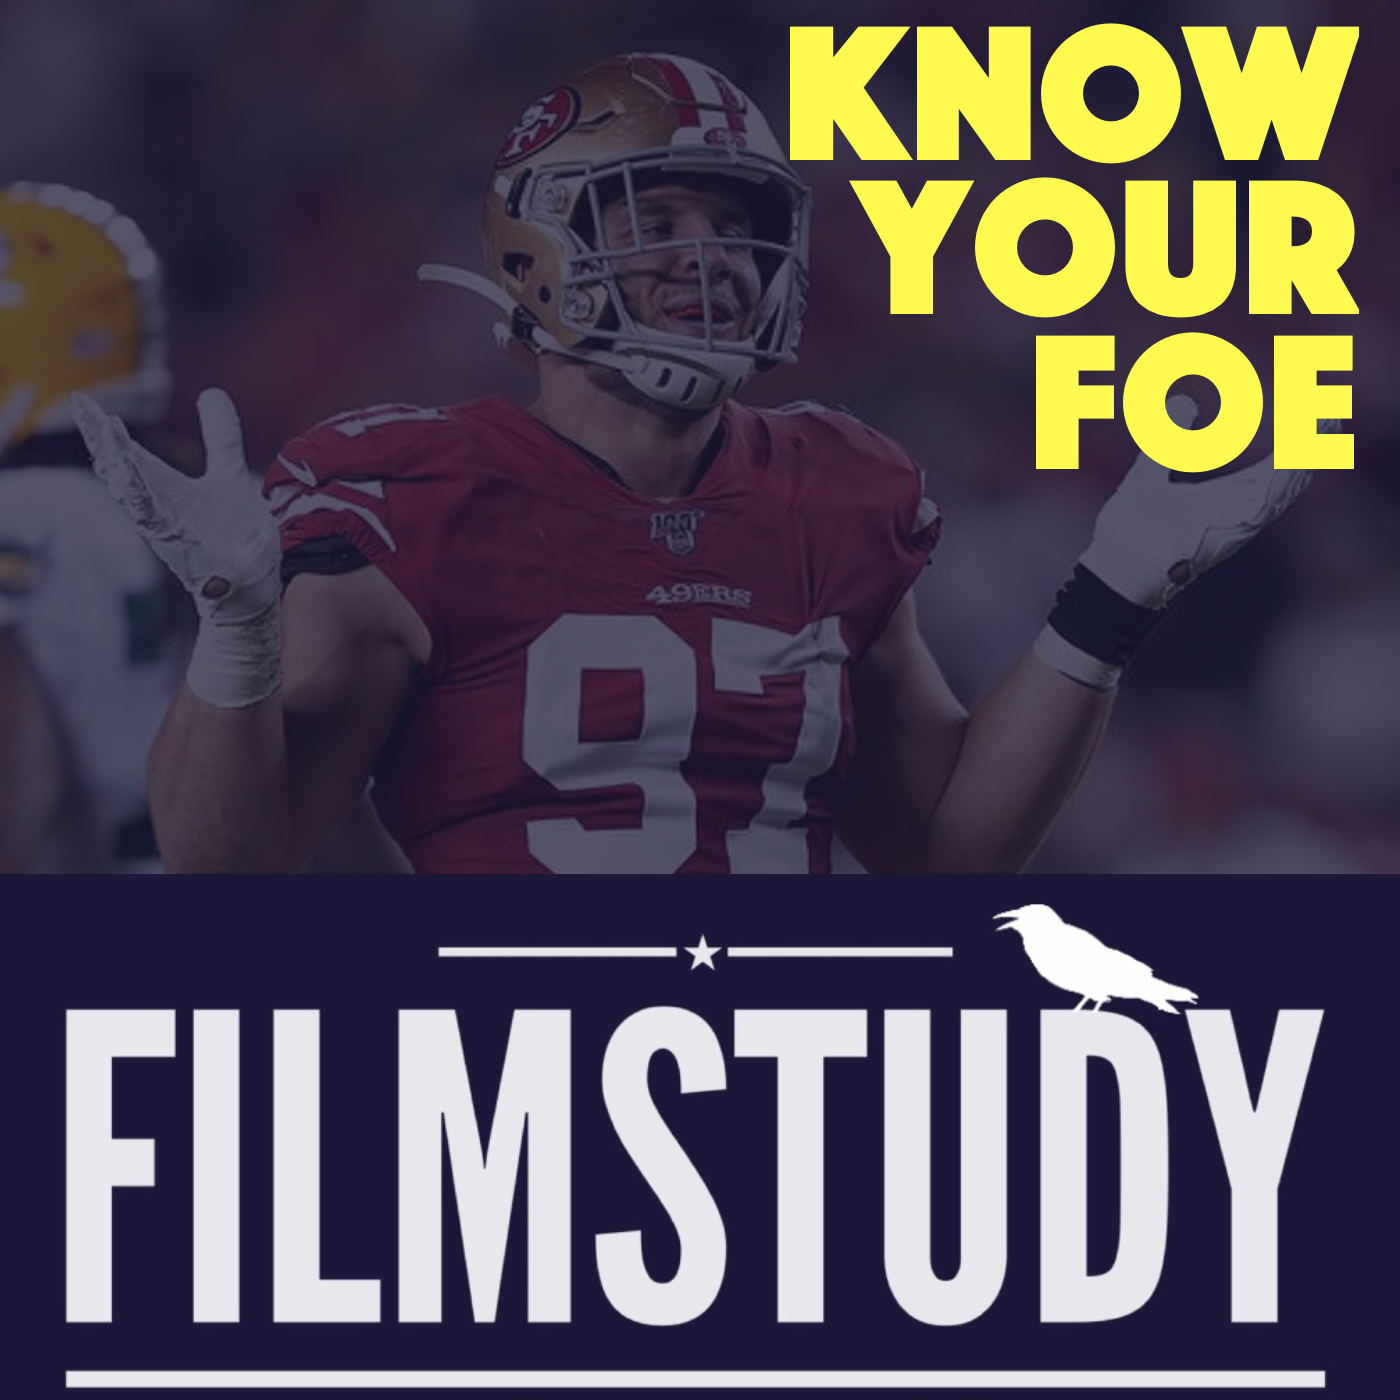 Know Your Foe : 49ers